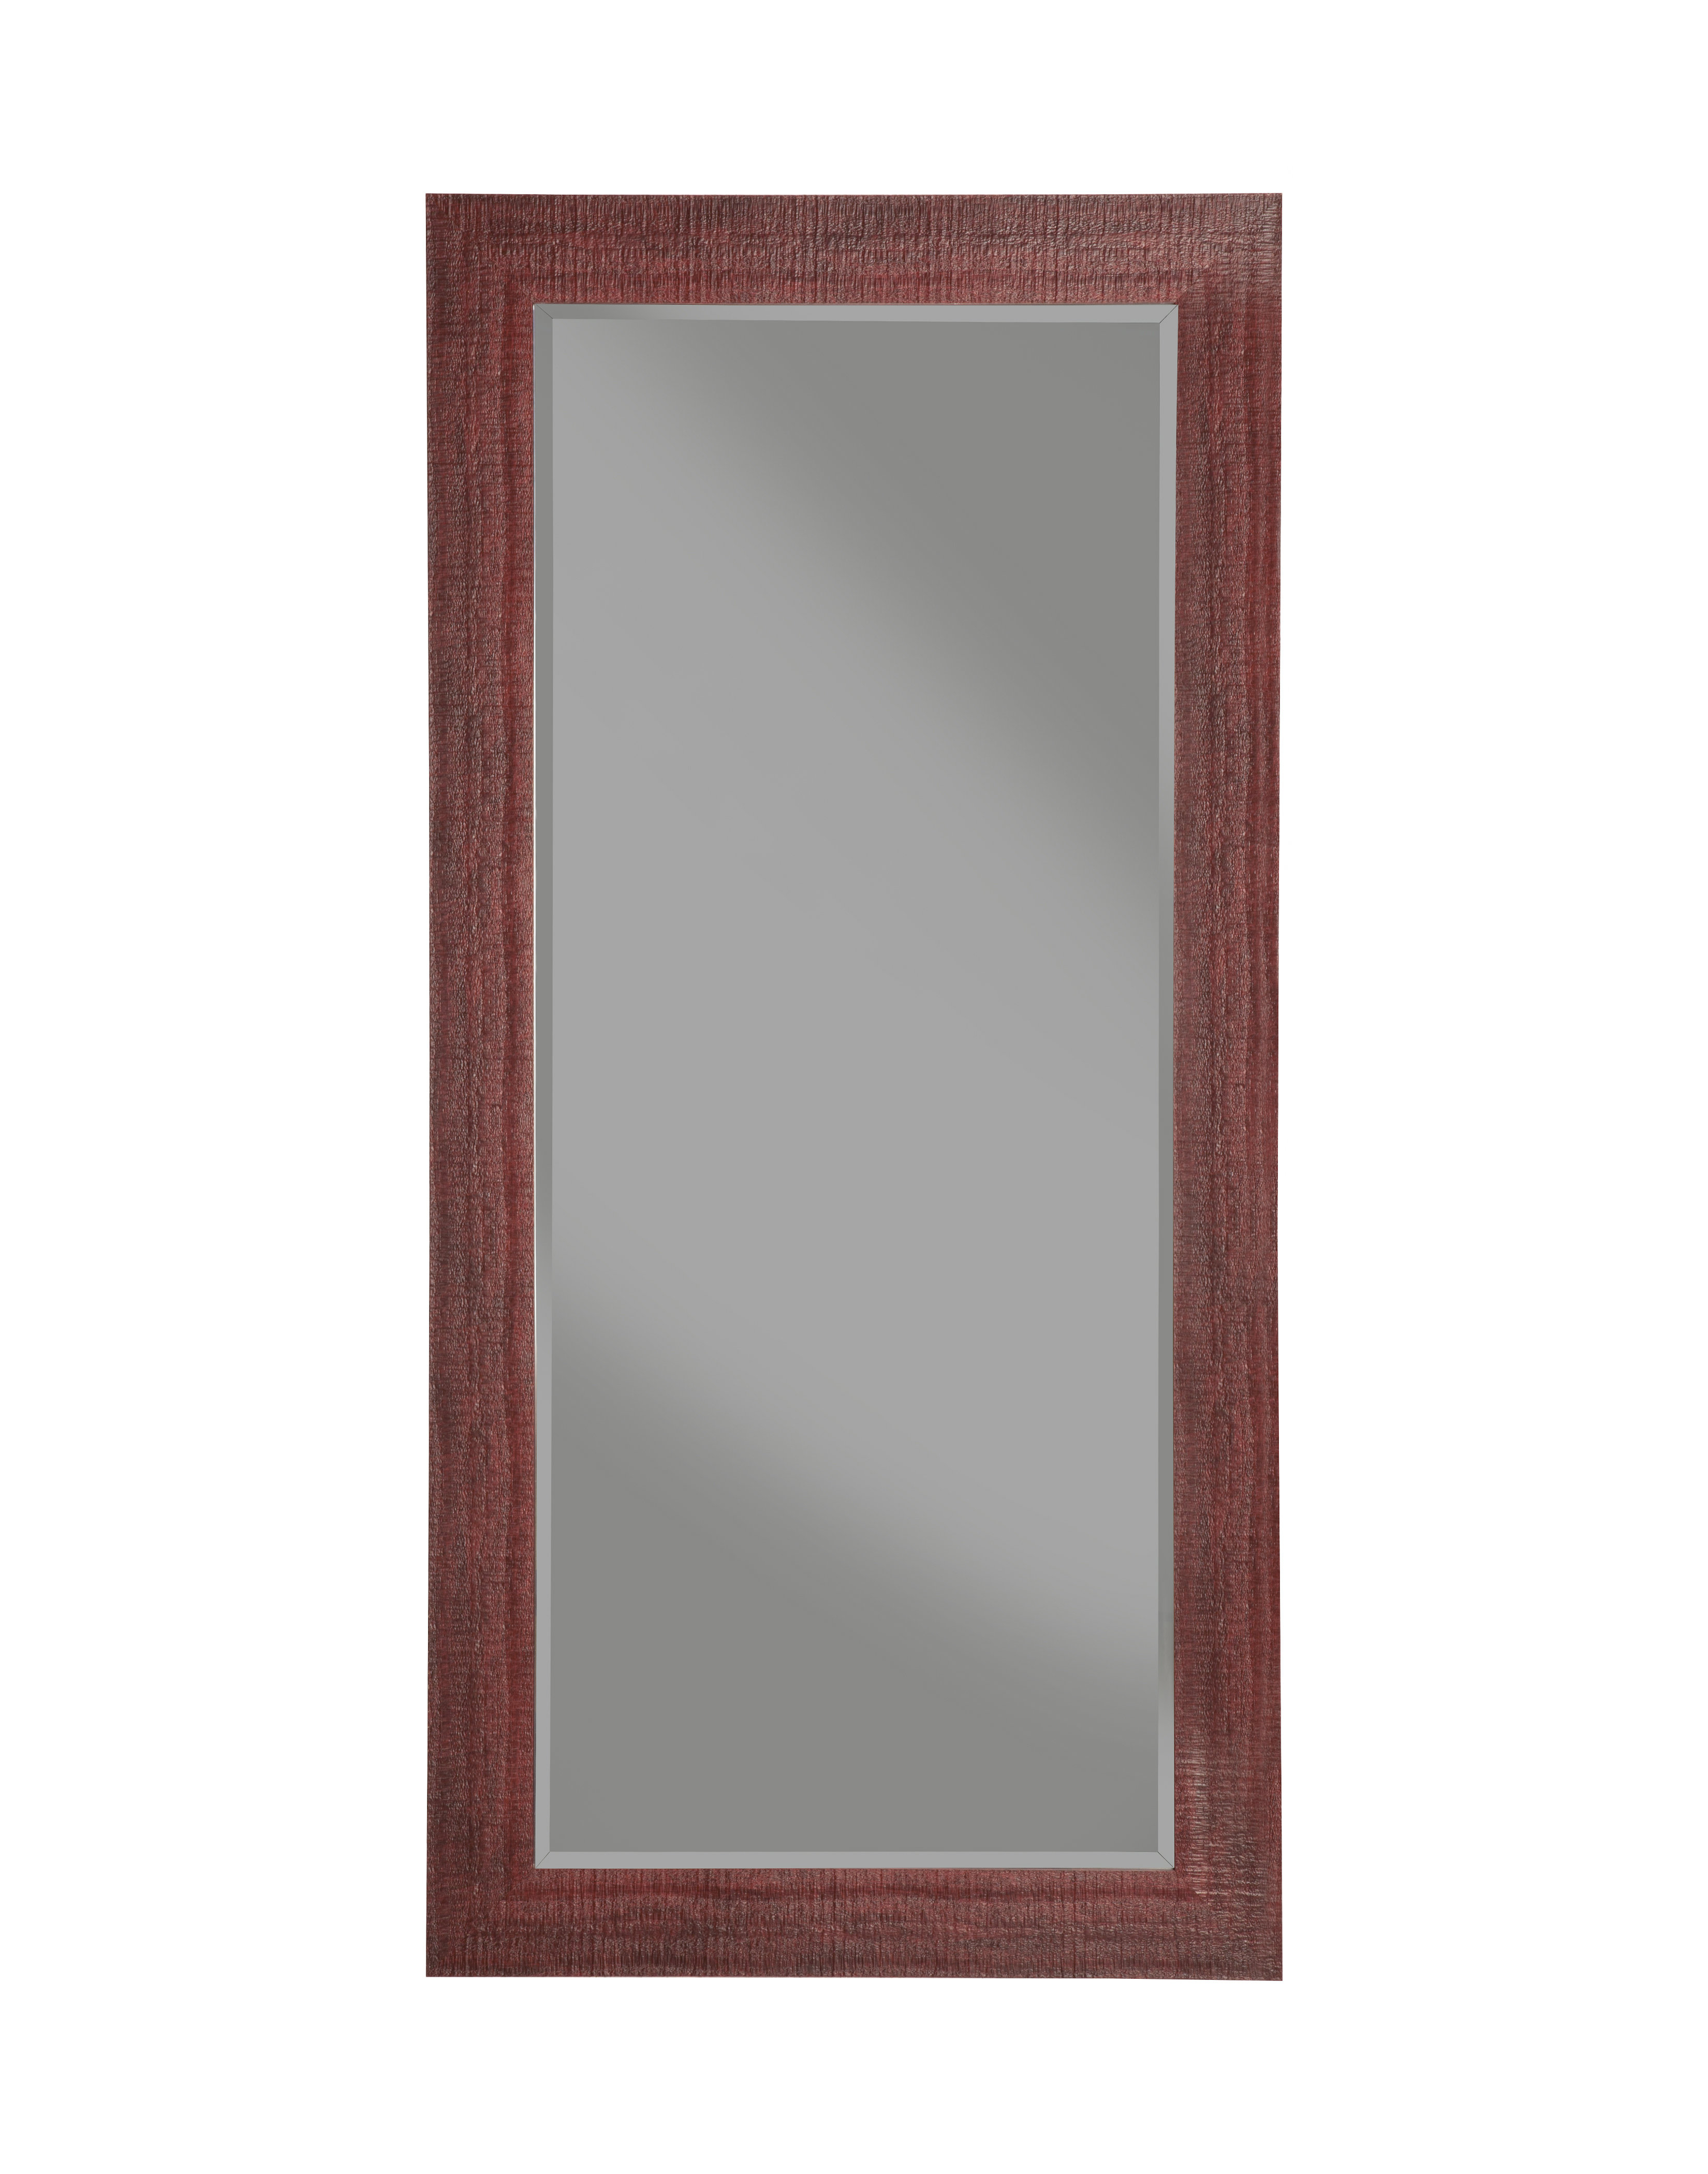 Gillett Cottage Full Length Mirror Pertaining To Longwood Rustic Beveled Accent Mirrors (Image 4 of 20)